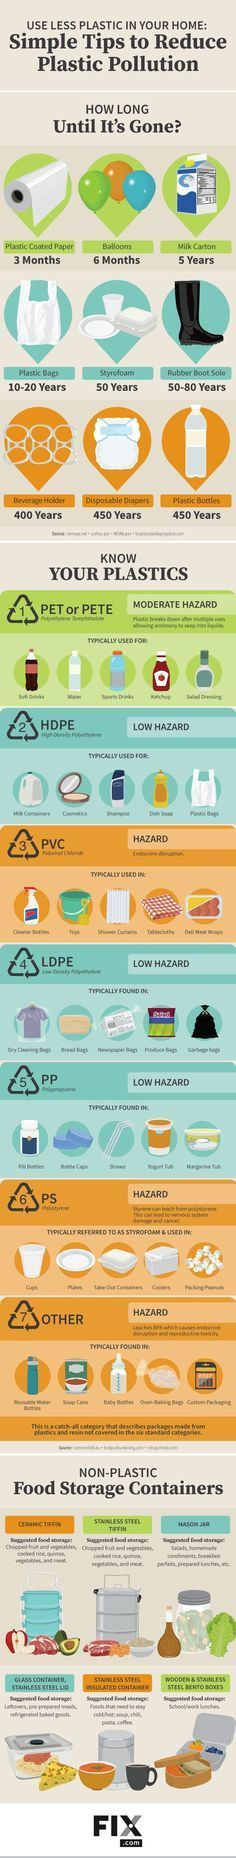 Learn more about superfluous plastic and how it's impacting your health and the environment. With some small changes you can reduce… #wastereduction